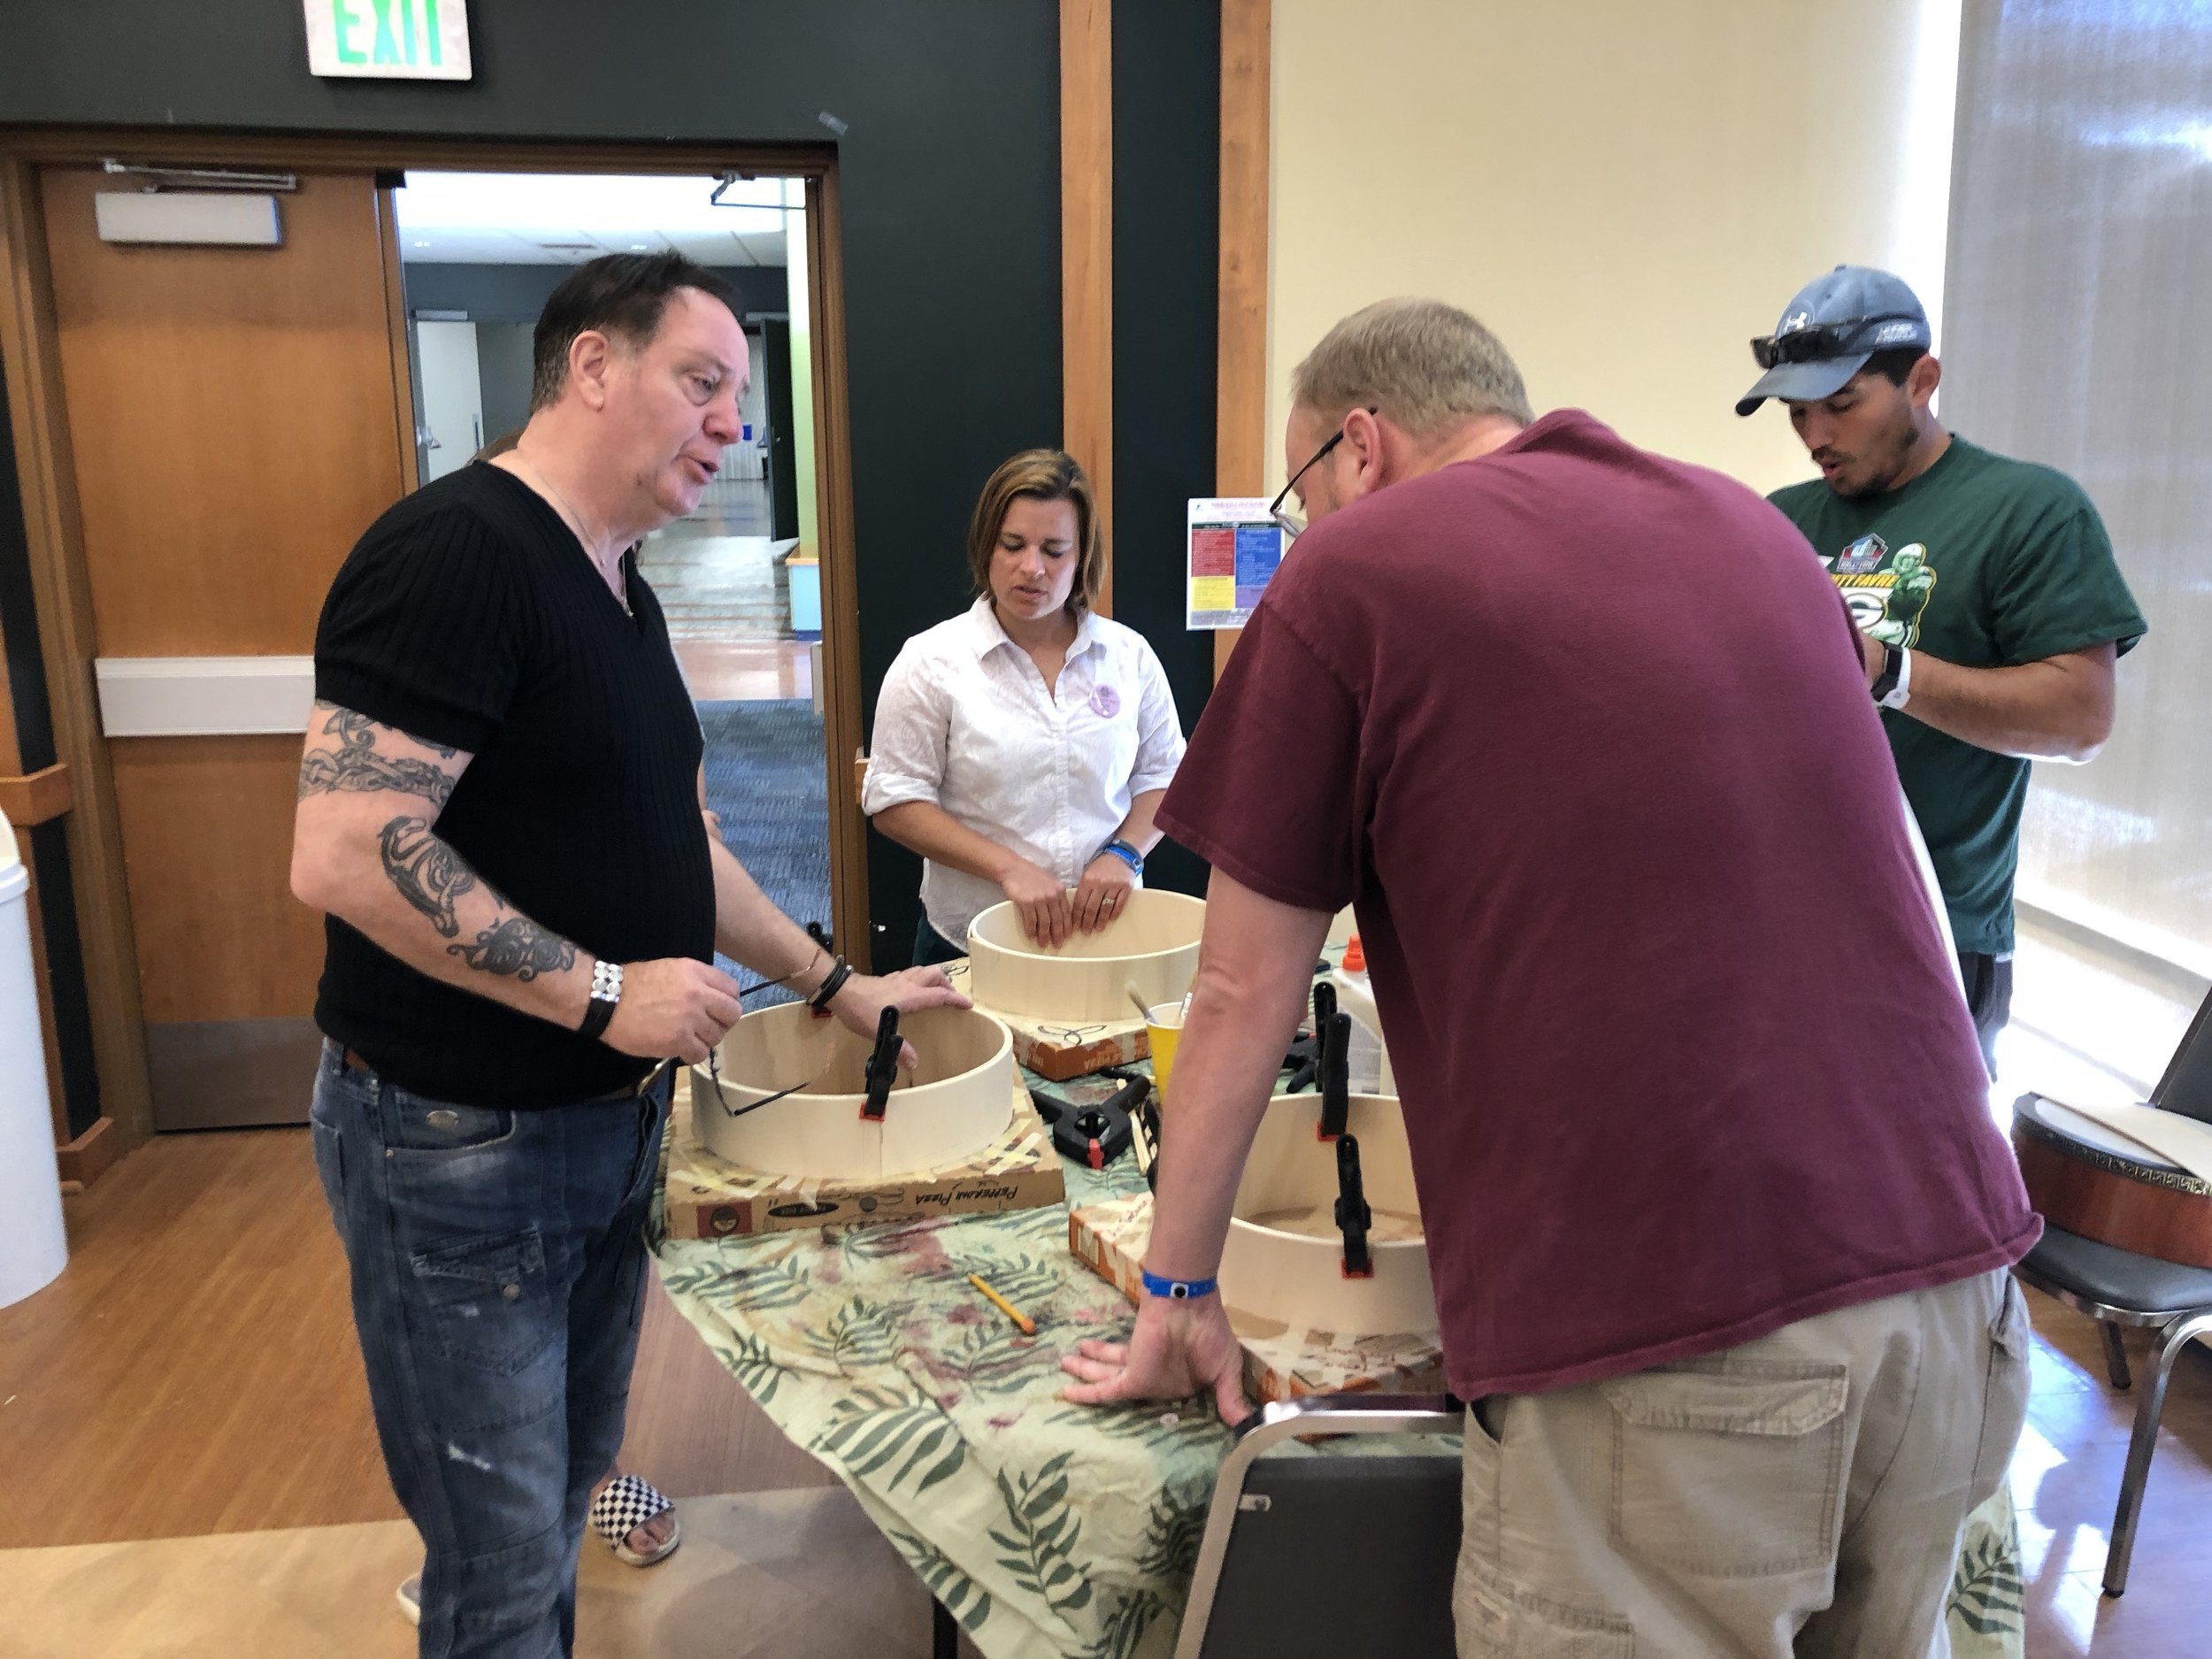 Frank McGuire teaching students how to make a bodhran at Common Ground On The Hill week 3.